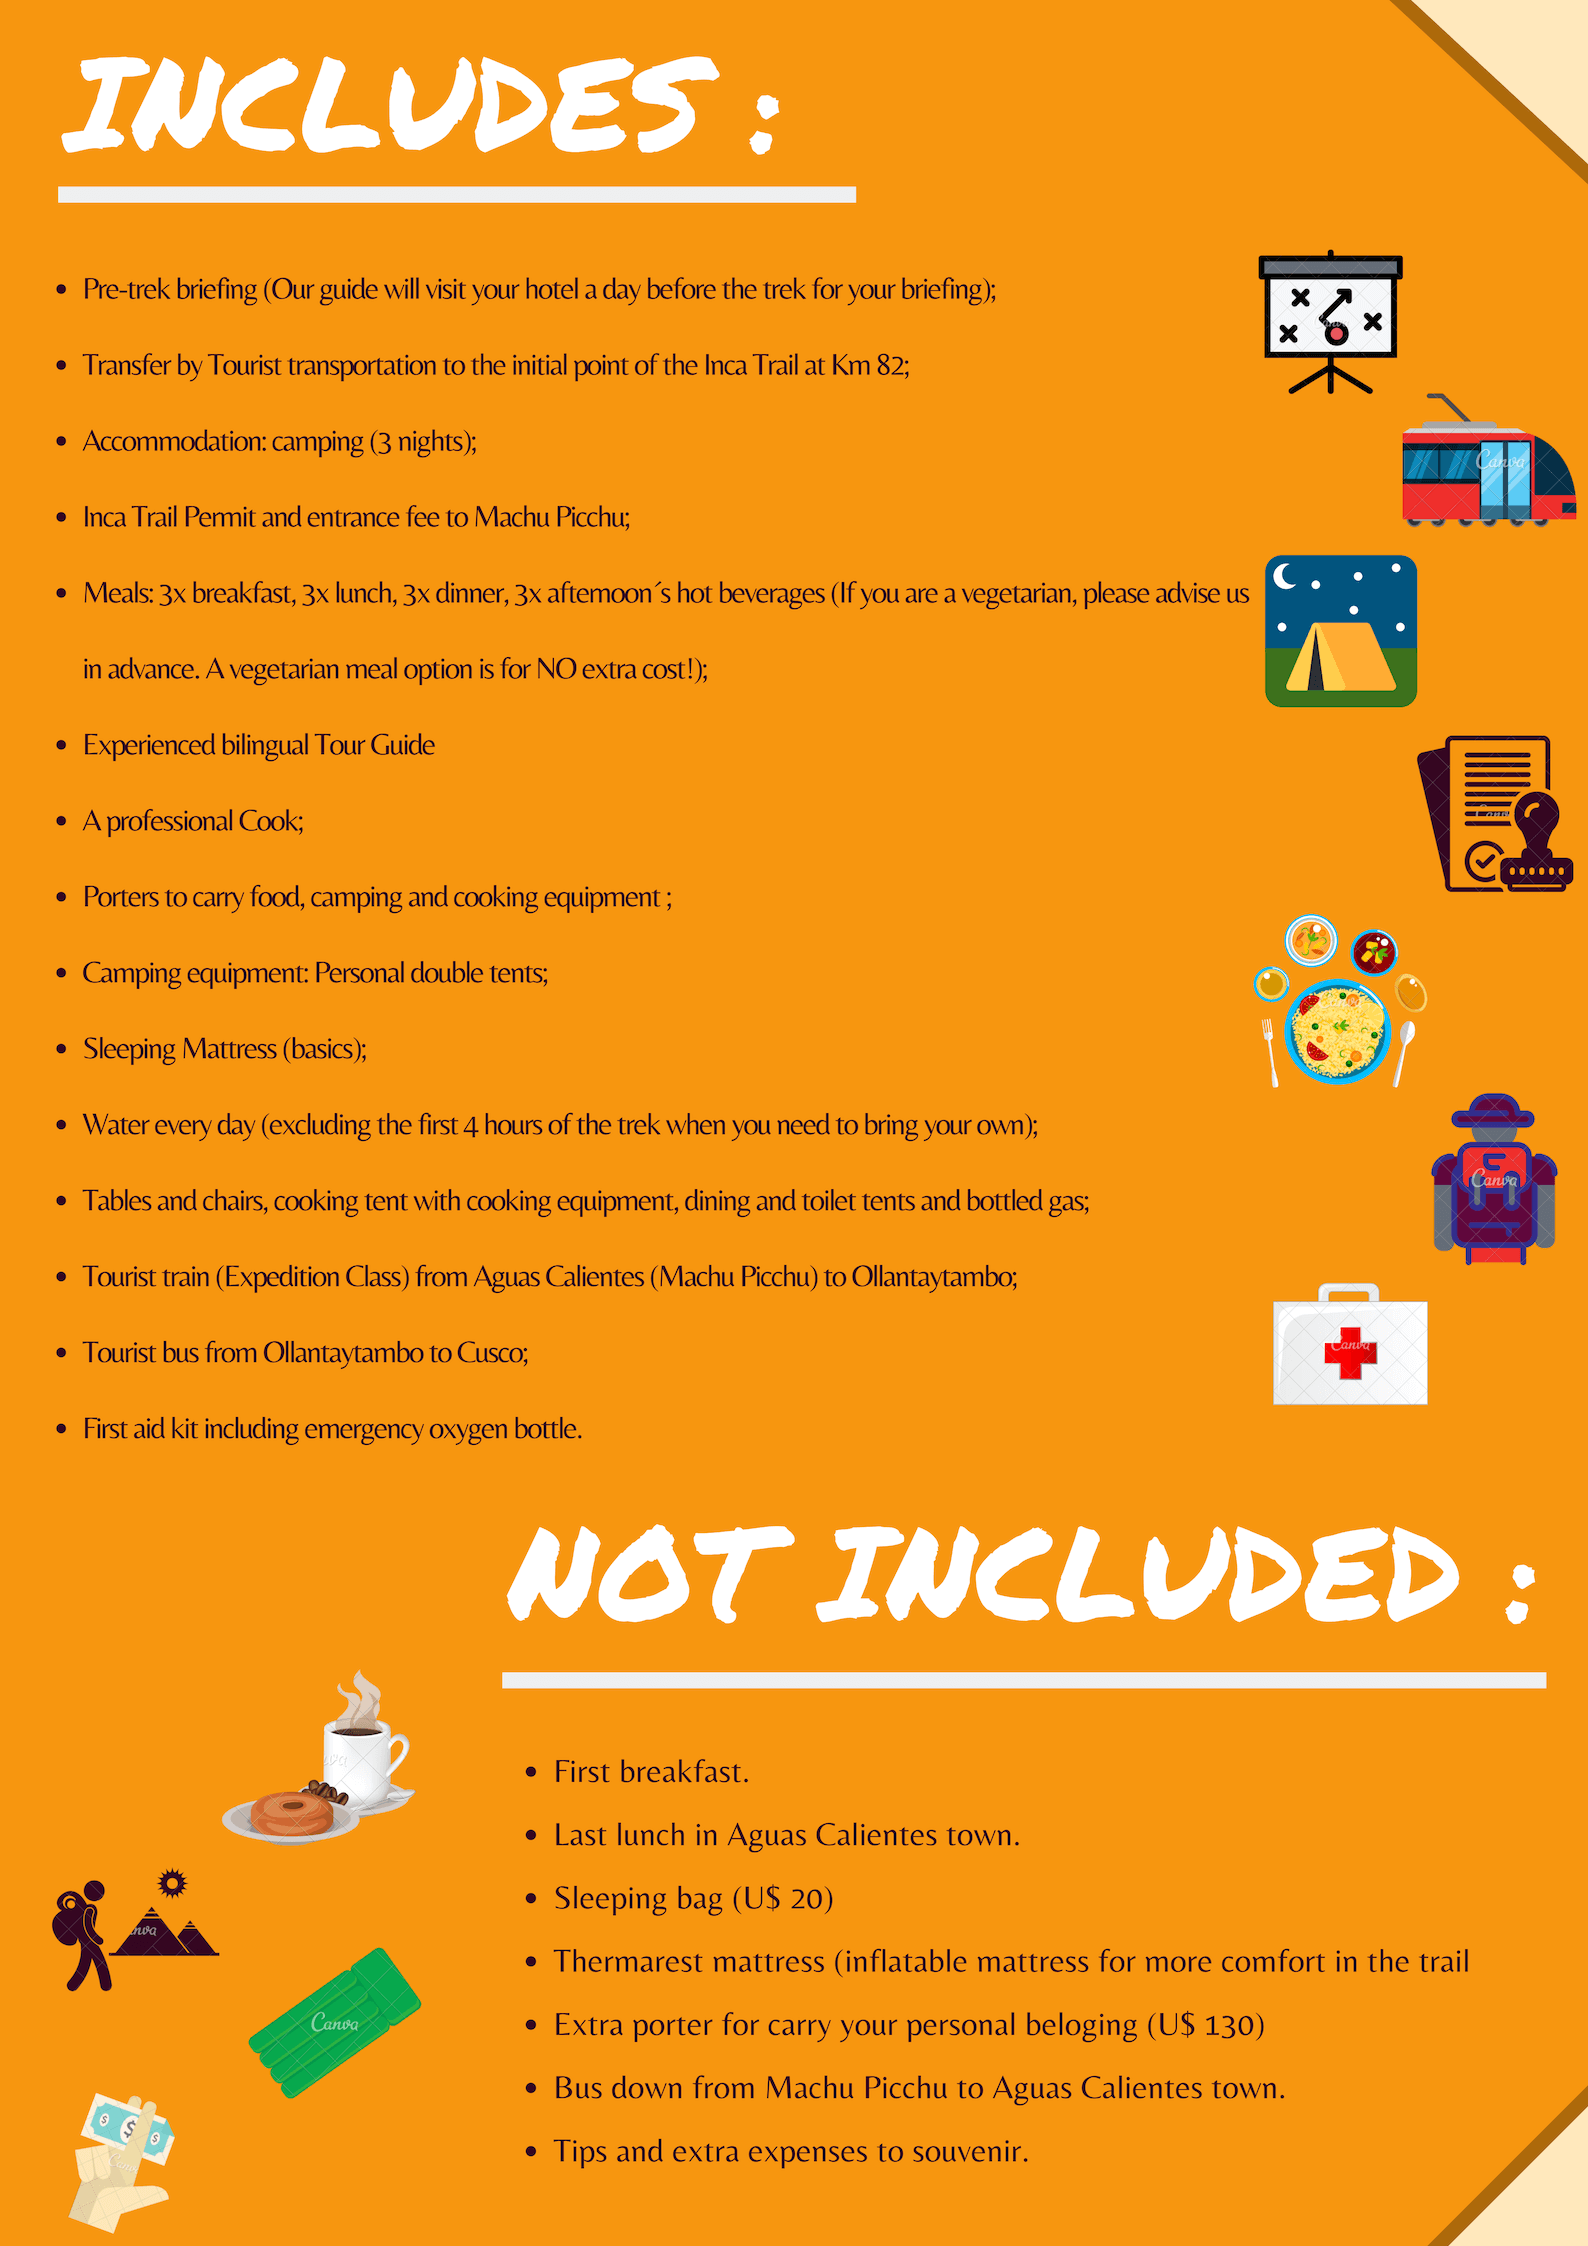 Inca_Trail_includes_not_includes